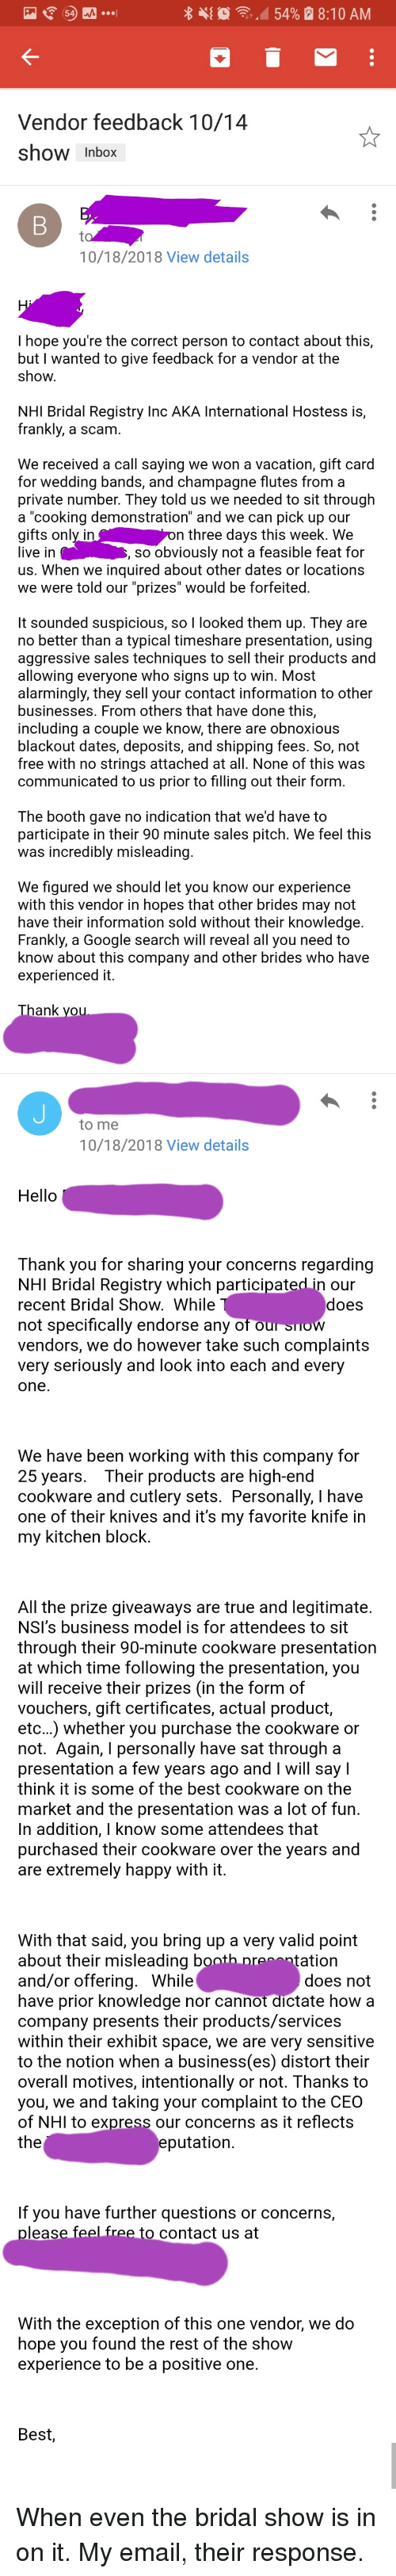 "timeshare: 4{  .4 54%  8:10 AM  Vendor feedback 10/14  show Inbox  10/18/2018 View details  I hope you're the correct person to contact about this,  but I wanted to give feedback for a vendor at the  show  NHI Bridal Registry Inc AKA International Hostess is,  frankly, a scam.  We received a call saying we won a vacation, gift card  for wedding bands, and champagne flutes from a  private number. They told us we needed to sit through  a ""cooking demonstration"" and we can pick up our  gifts only in  live in  us. When we inquired about other dates or locations  we were told our ""prizes"" would be forfeited  n three days this week. We  so obviously not a feasible feat for  It sounded suspicious, so I looked them up. They are  no better than a typical timeshare presentation, using  aggressive sales techniques to sell their products and  allowing everyone who signs up to win. Most  alarmingly, they sell your contact information to other  businesses. From others that have done this,  including a couple we know, there are obnoxious  blackout dates, deposits, and shipping fees. So, not  free with no strings attached at all. None of this was  communicated to us prior to filling out their form.  The booth gave no indication that we'd have to  participate in their 90 minute sales pitch. We feel this  was incredibly misleading  We figured we should let you know our experience  with this vendor in hopes that other brides may not  have their information sold without their knowledge  Frankly, a Google search will reveal all you need to  know about this company and other brides who have  experienced it.  ank  to me  10/18/2018 View details  Hello  Thank you for sharing your concerns regarding  NHI Bridal Registry which participat  recent Bridal Show. While  not specifically endorse any o  vendors, we do however take such complaints  very seriously and look into each and every  one  our  does  We have been working with this company for  25 years. Their products are high-end  cookware and cutlery sets. Personally, I have  one of their knives and it's my favorite knife in  my kitchen block.  All the prize giveaways are true and legitimate  NSI's business model is for attendees to sit  through their 90-minute cookware presentation  at which time following the presentation, you  will receive their prizes (in the form of  vouchers, gift certificates, actual product,  etc...) whether you purchase the cookware or  not. Again, I personally have sat through a  presentation a few years ago and I will say I  think it is some of the best cookware on the  market and the presentation was a lot of fun  In addition, I know some attendees that  purchased their cookware over the years and  are extremely happy with it.  With that said, you bring up a very valid point  about their misleading  and/or offering. While  have prior knowledge nor cannot dictate how a  company presents their products/services  within their exhibit space, we are very sensitive  to the notion when a business(es) distort their  overall motives, intentionally or not. Thanks to  you, we and taking your complaint to the CEO  of NHI to express our concerns as it reflects  the  ation  does not  putation  If you have further questions or concerns,  leas  contact us at  With the exception of this one vendor, we do  hope you found the rest of the show  experience to be a positive one  Best, When even the bridal show is in on it. My email, their response."